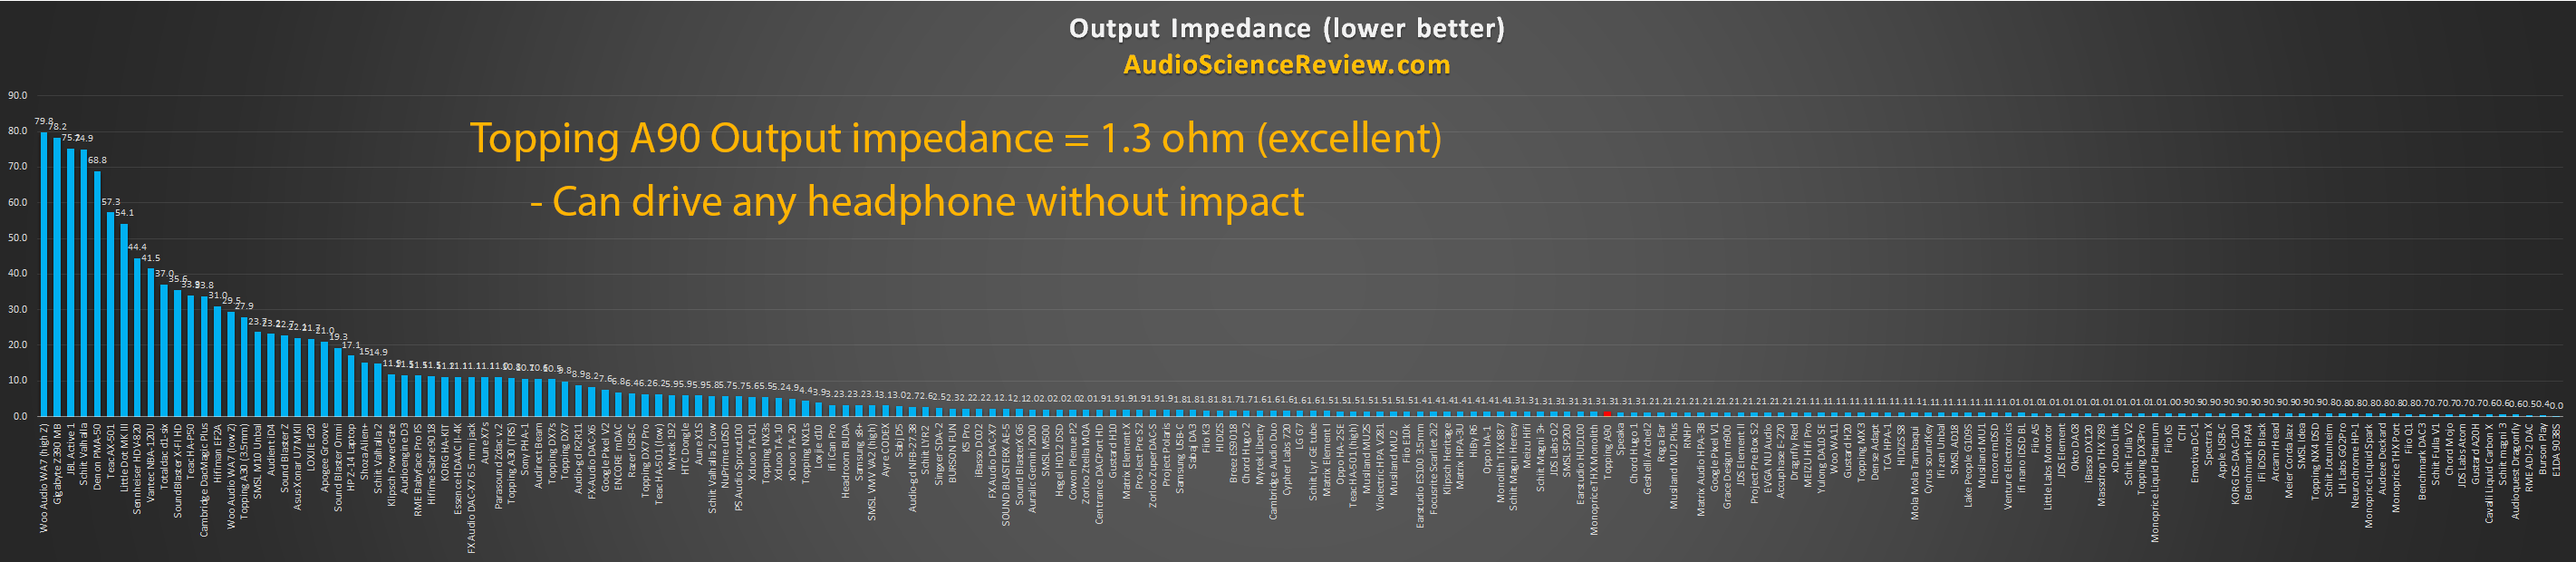 lowest output impedance headphone amplifier review 2020.png